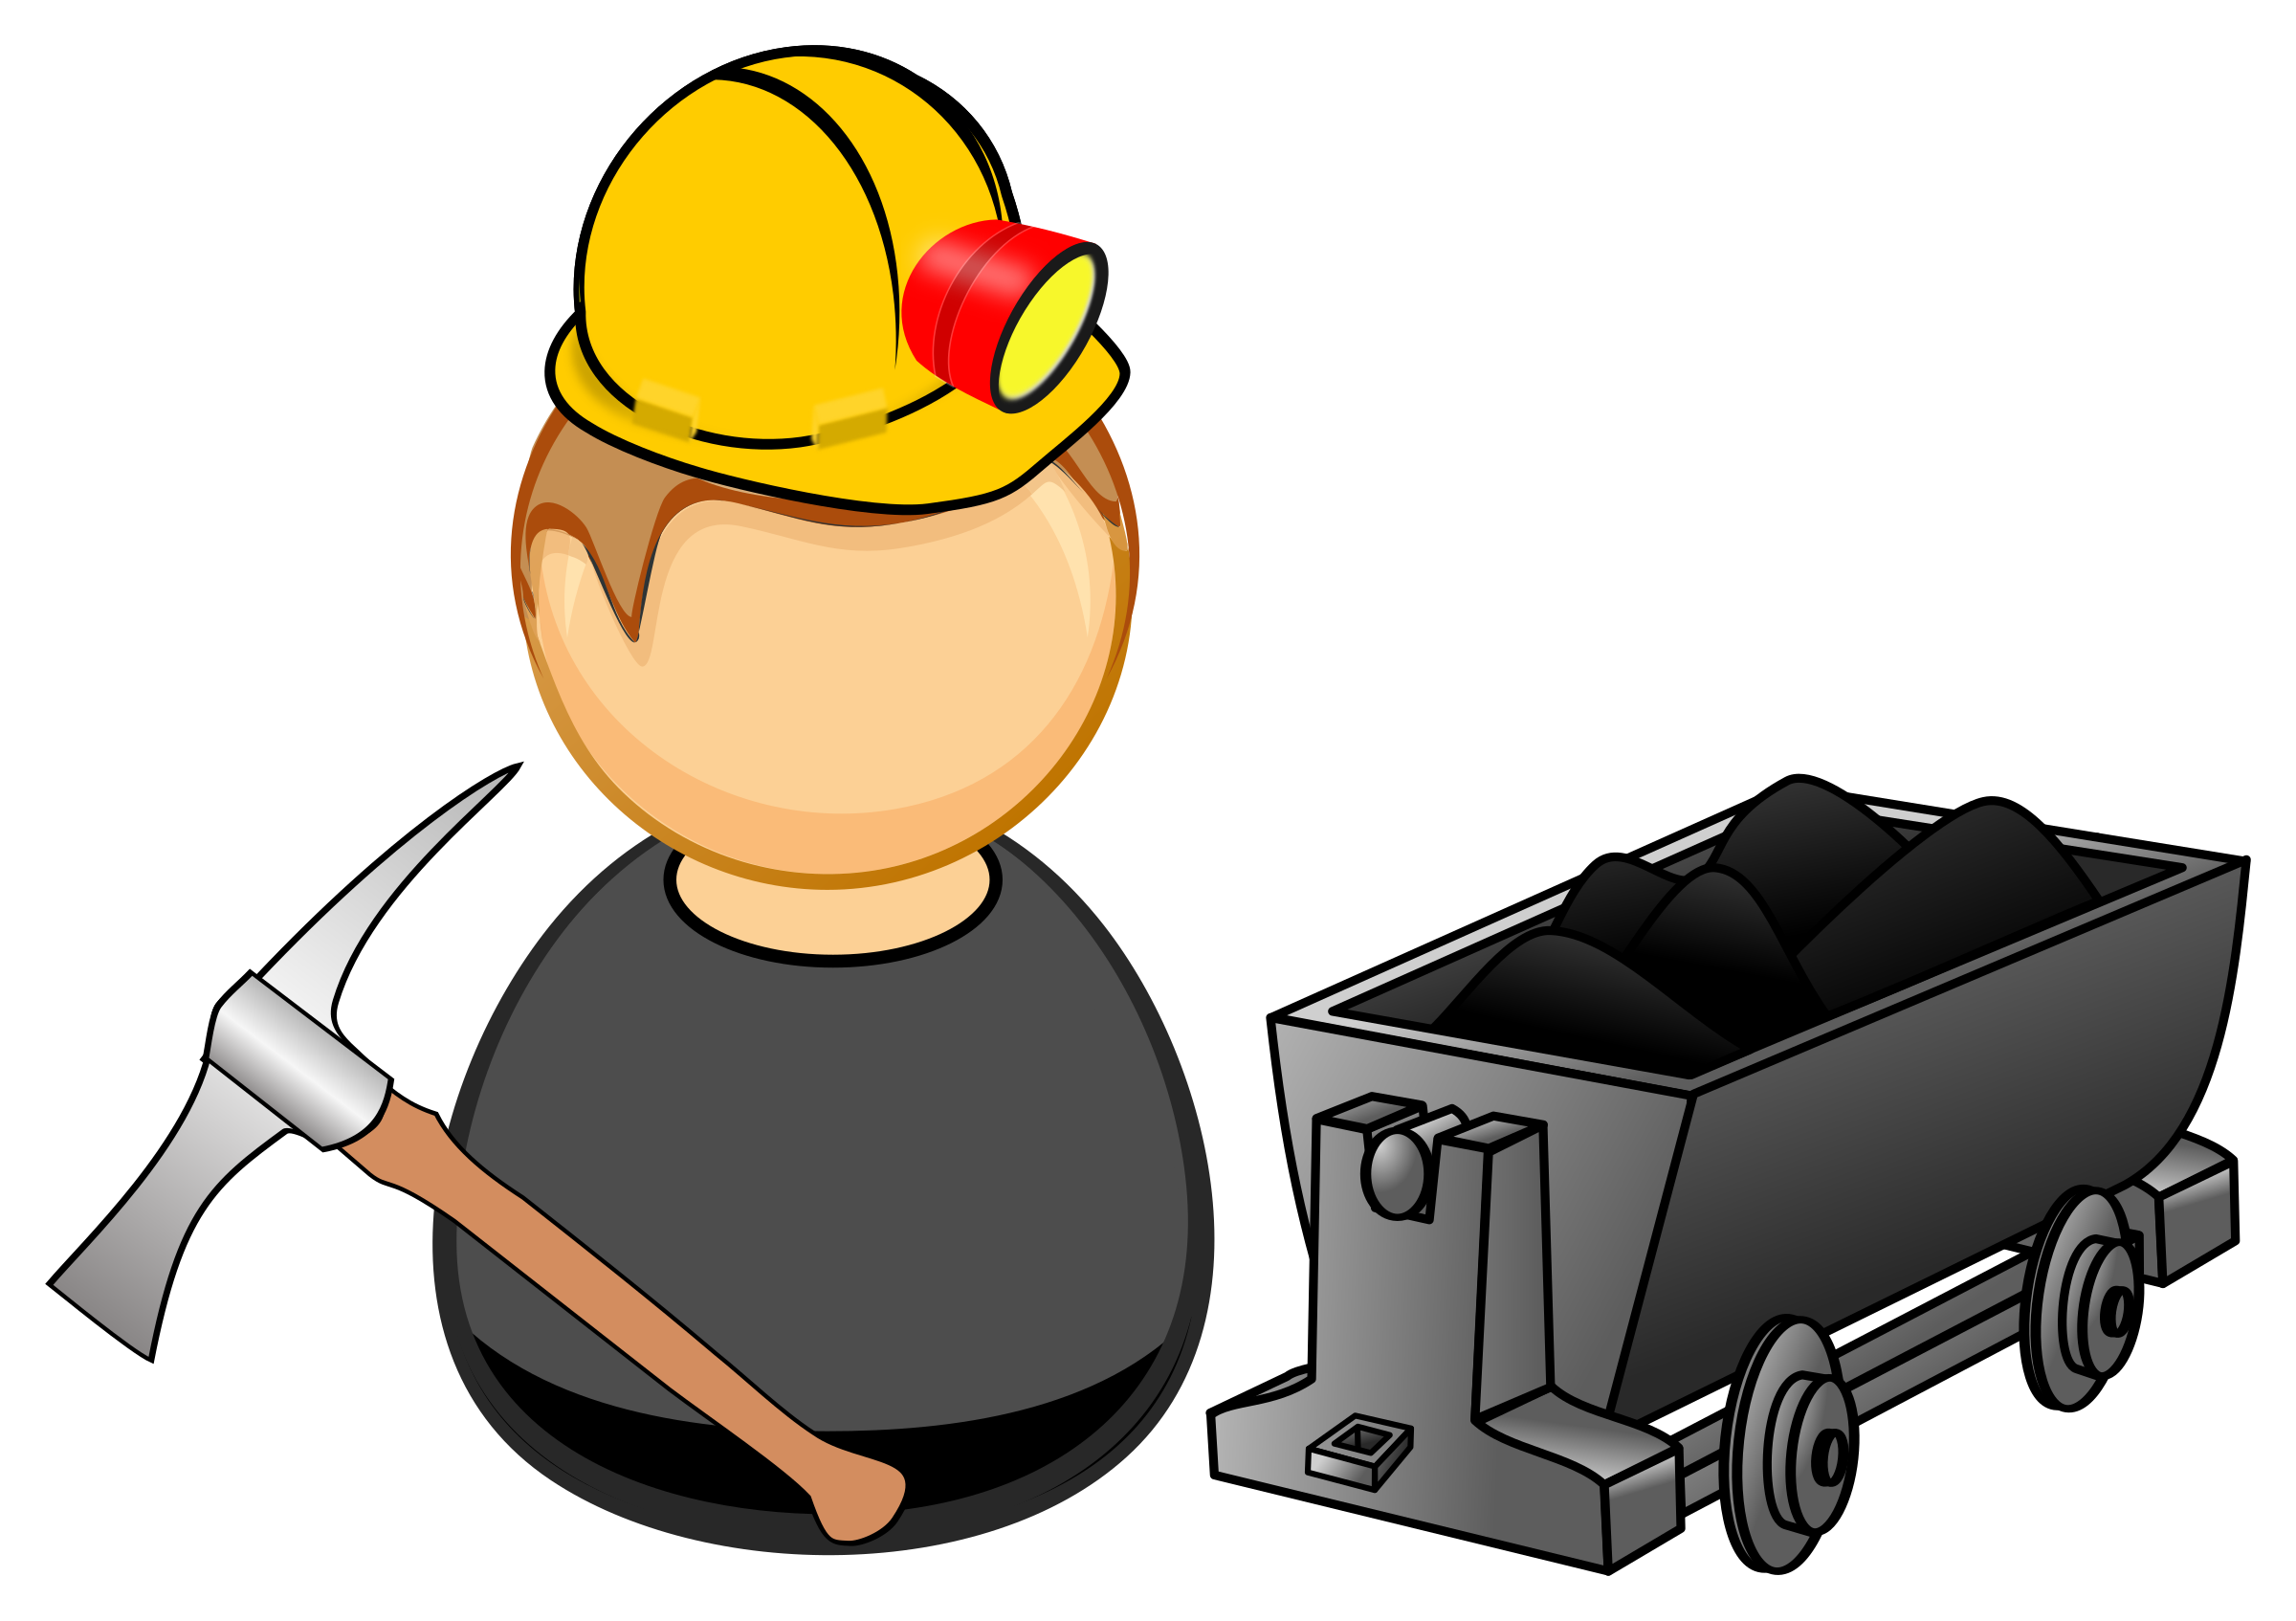 clipart miner coal miner clipart black and white coal miner clip art black and white